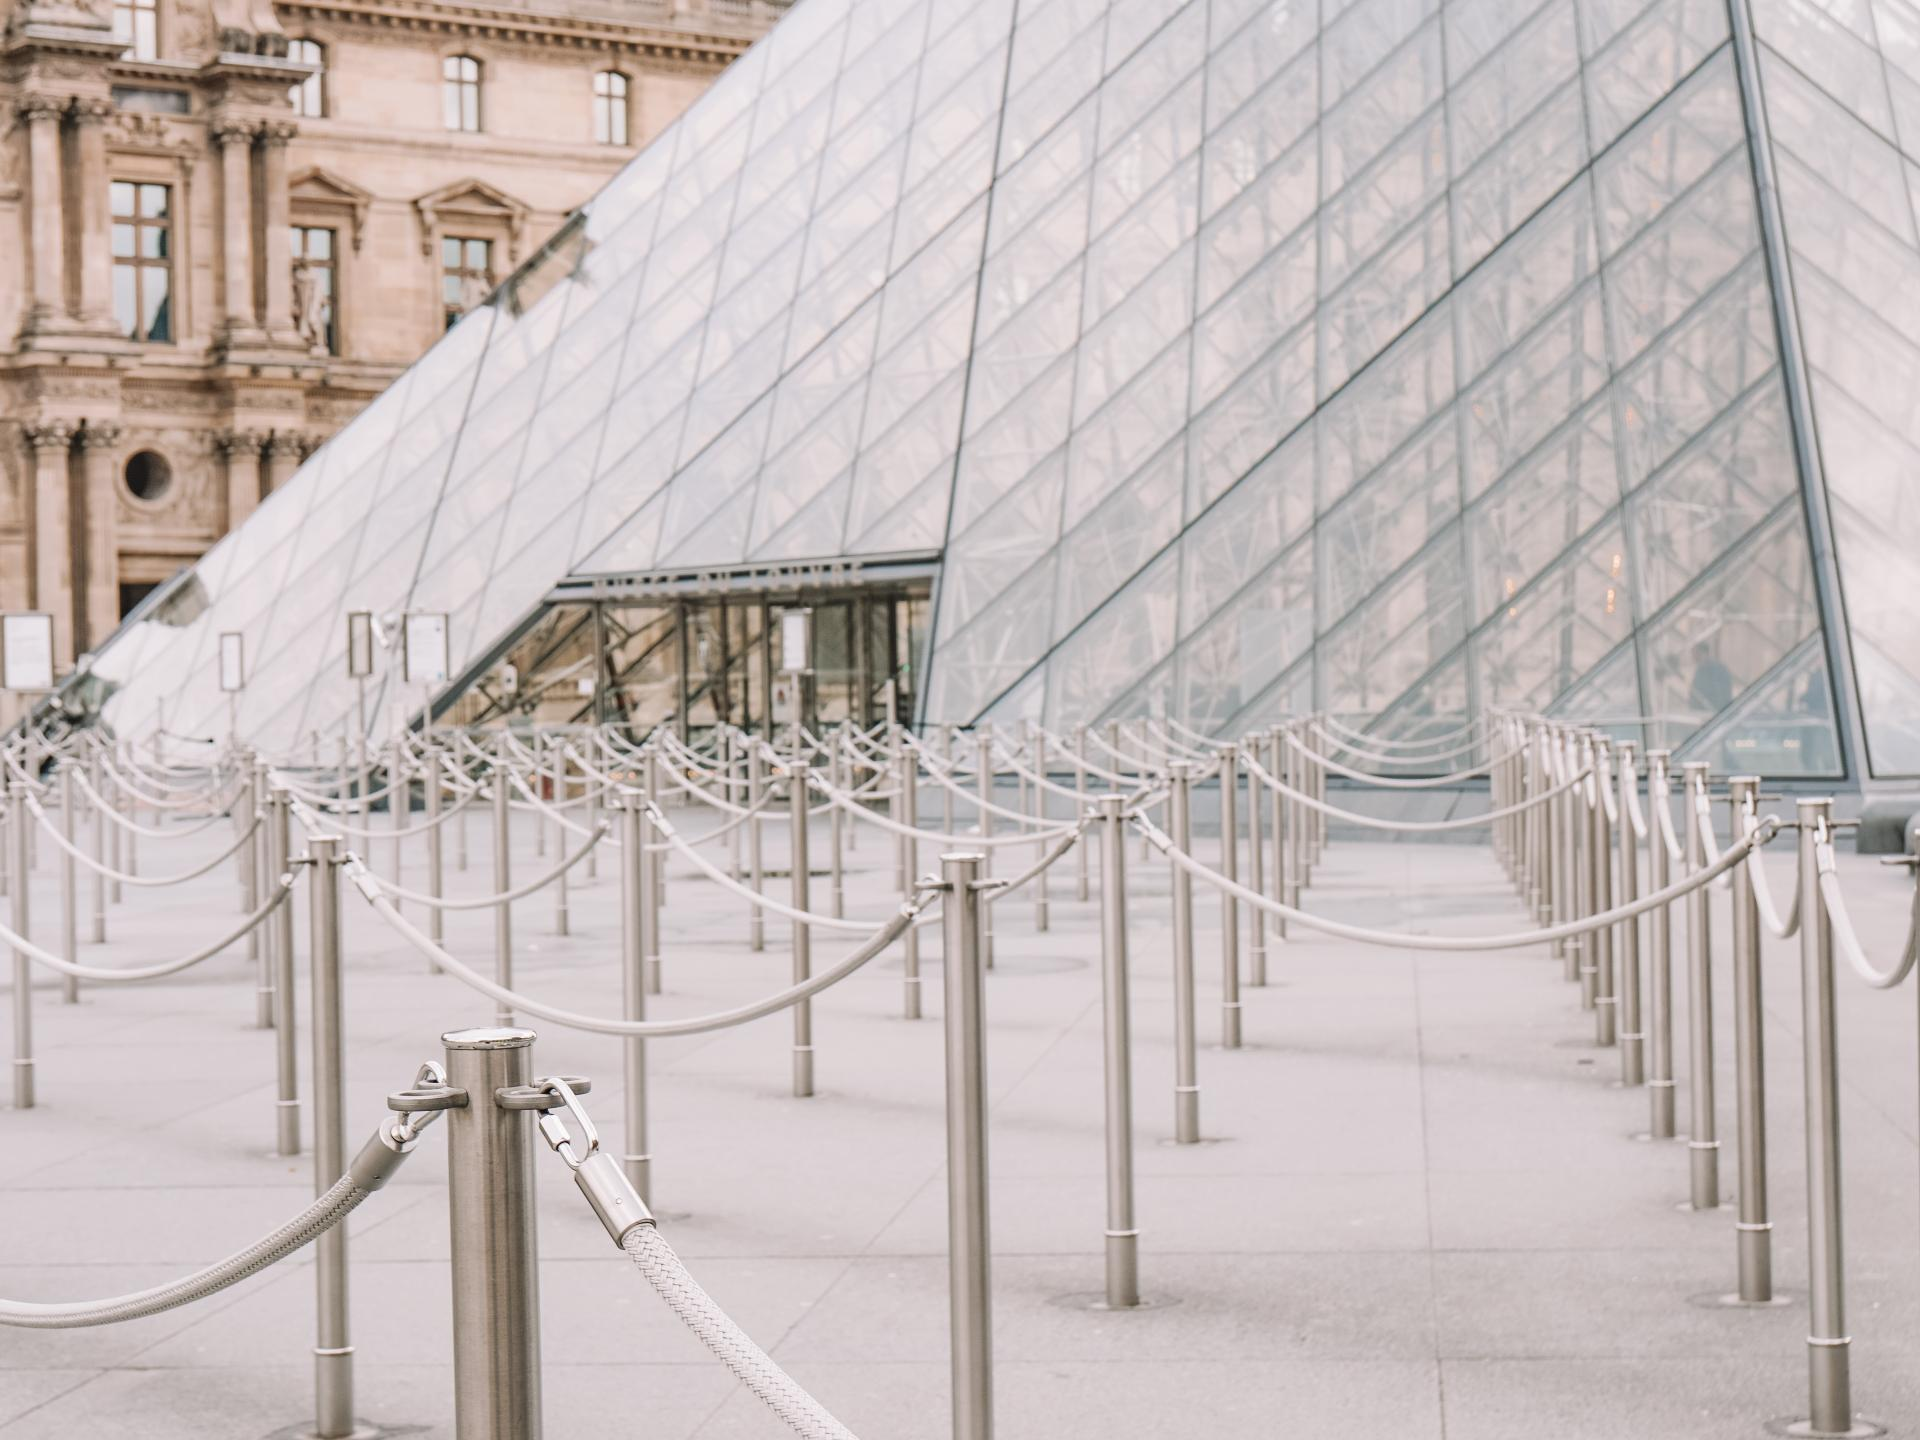 How to skip the line in Paris